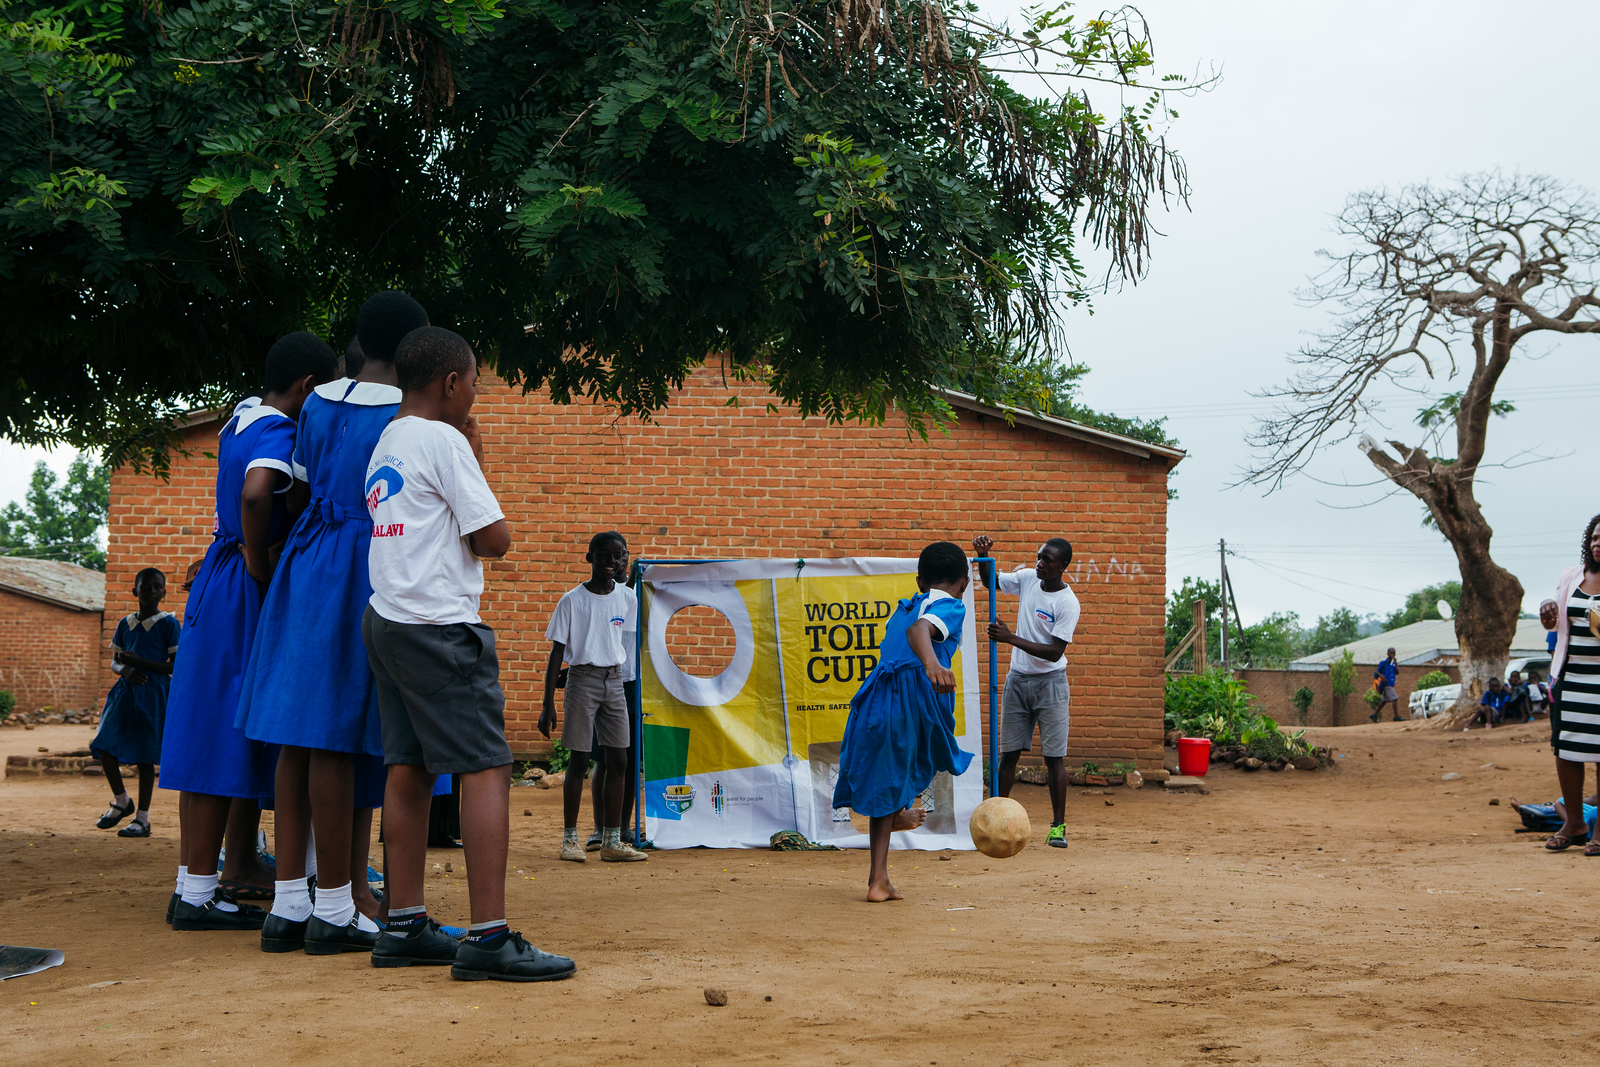 Students in Blantyre, Malawi compete in their World Toilet Cup. To help students use their facilities correctly, we have implemented innovative game-based education programs in schools.